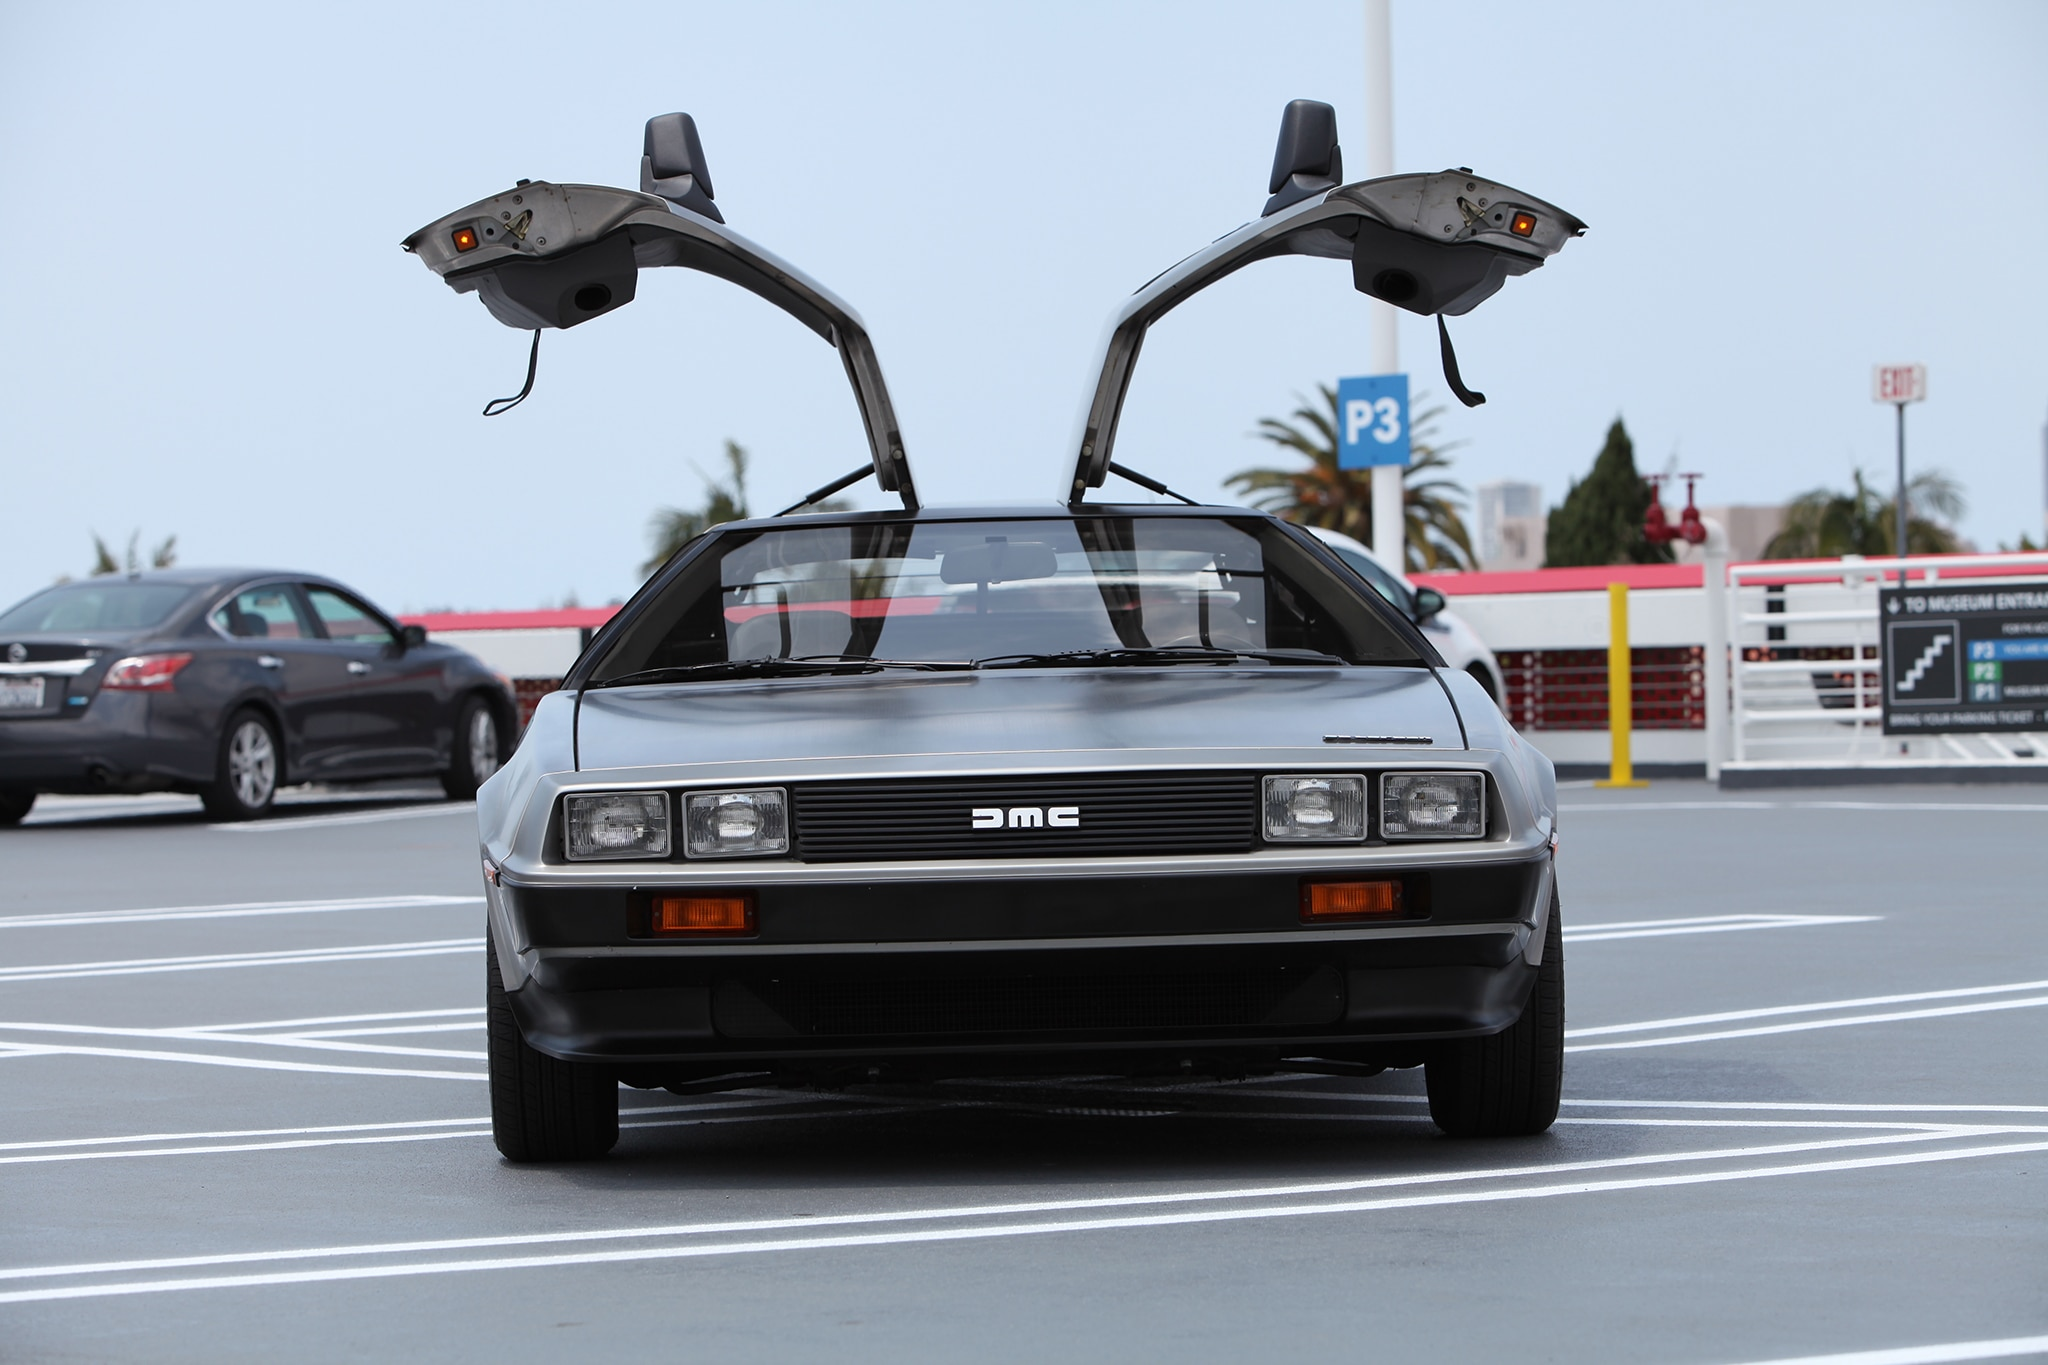 Show more & A Perfectly Restored DeLorean DMC-12 Could Be Yours